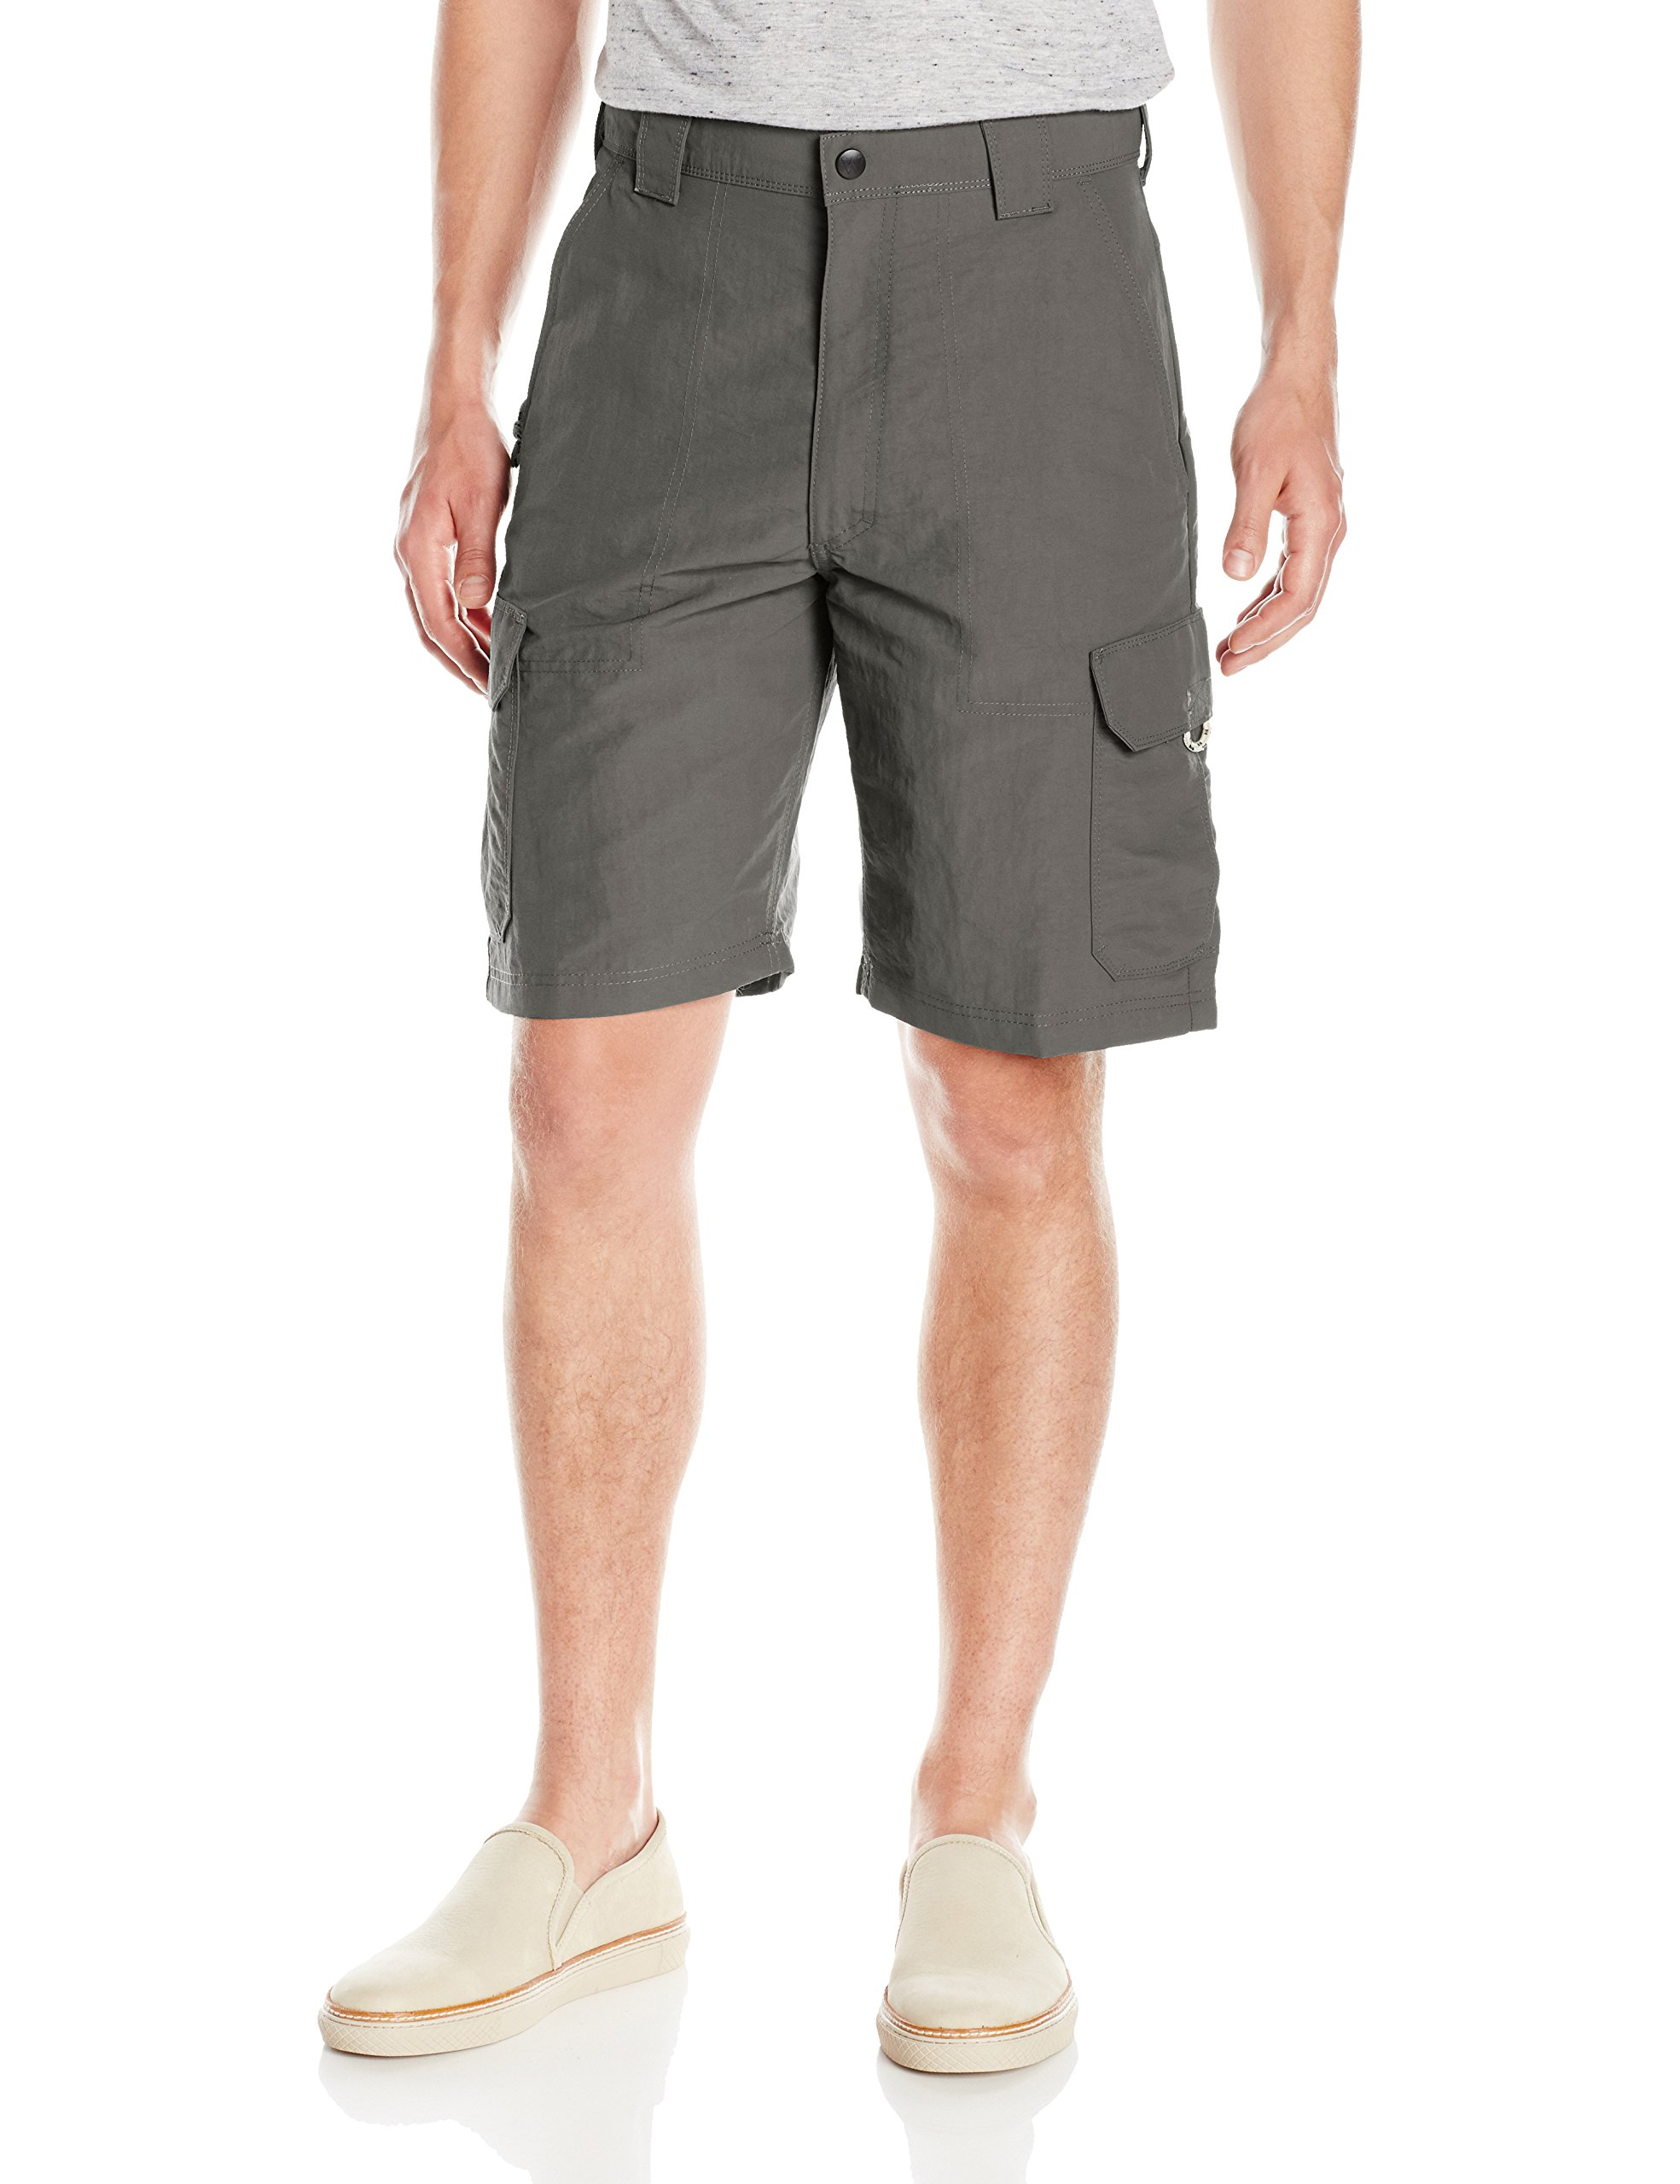 Wrangler Men's Authentics Outdoor Nylon Cargo Short, Asphalt, 33